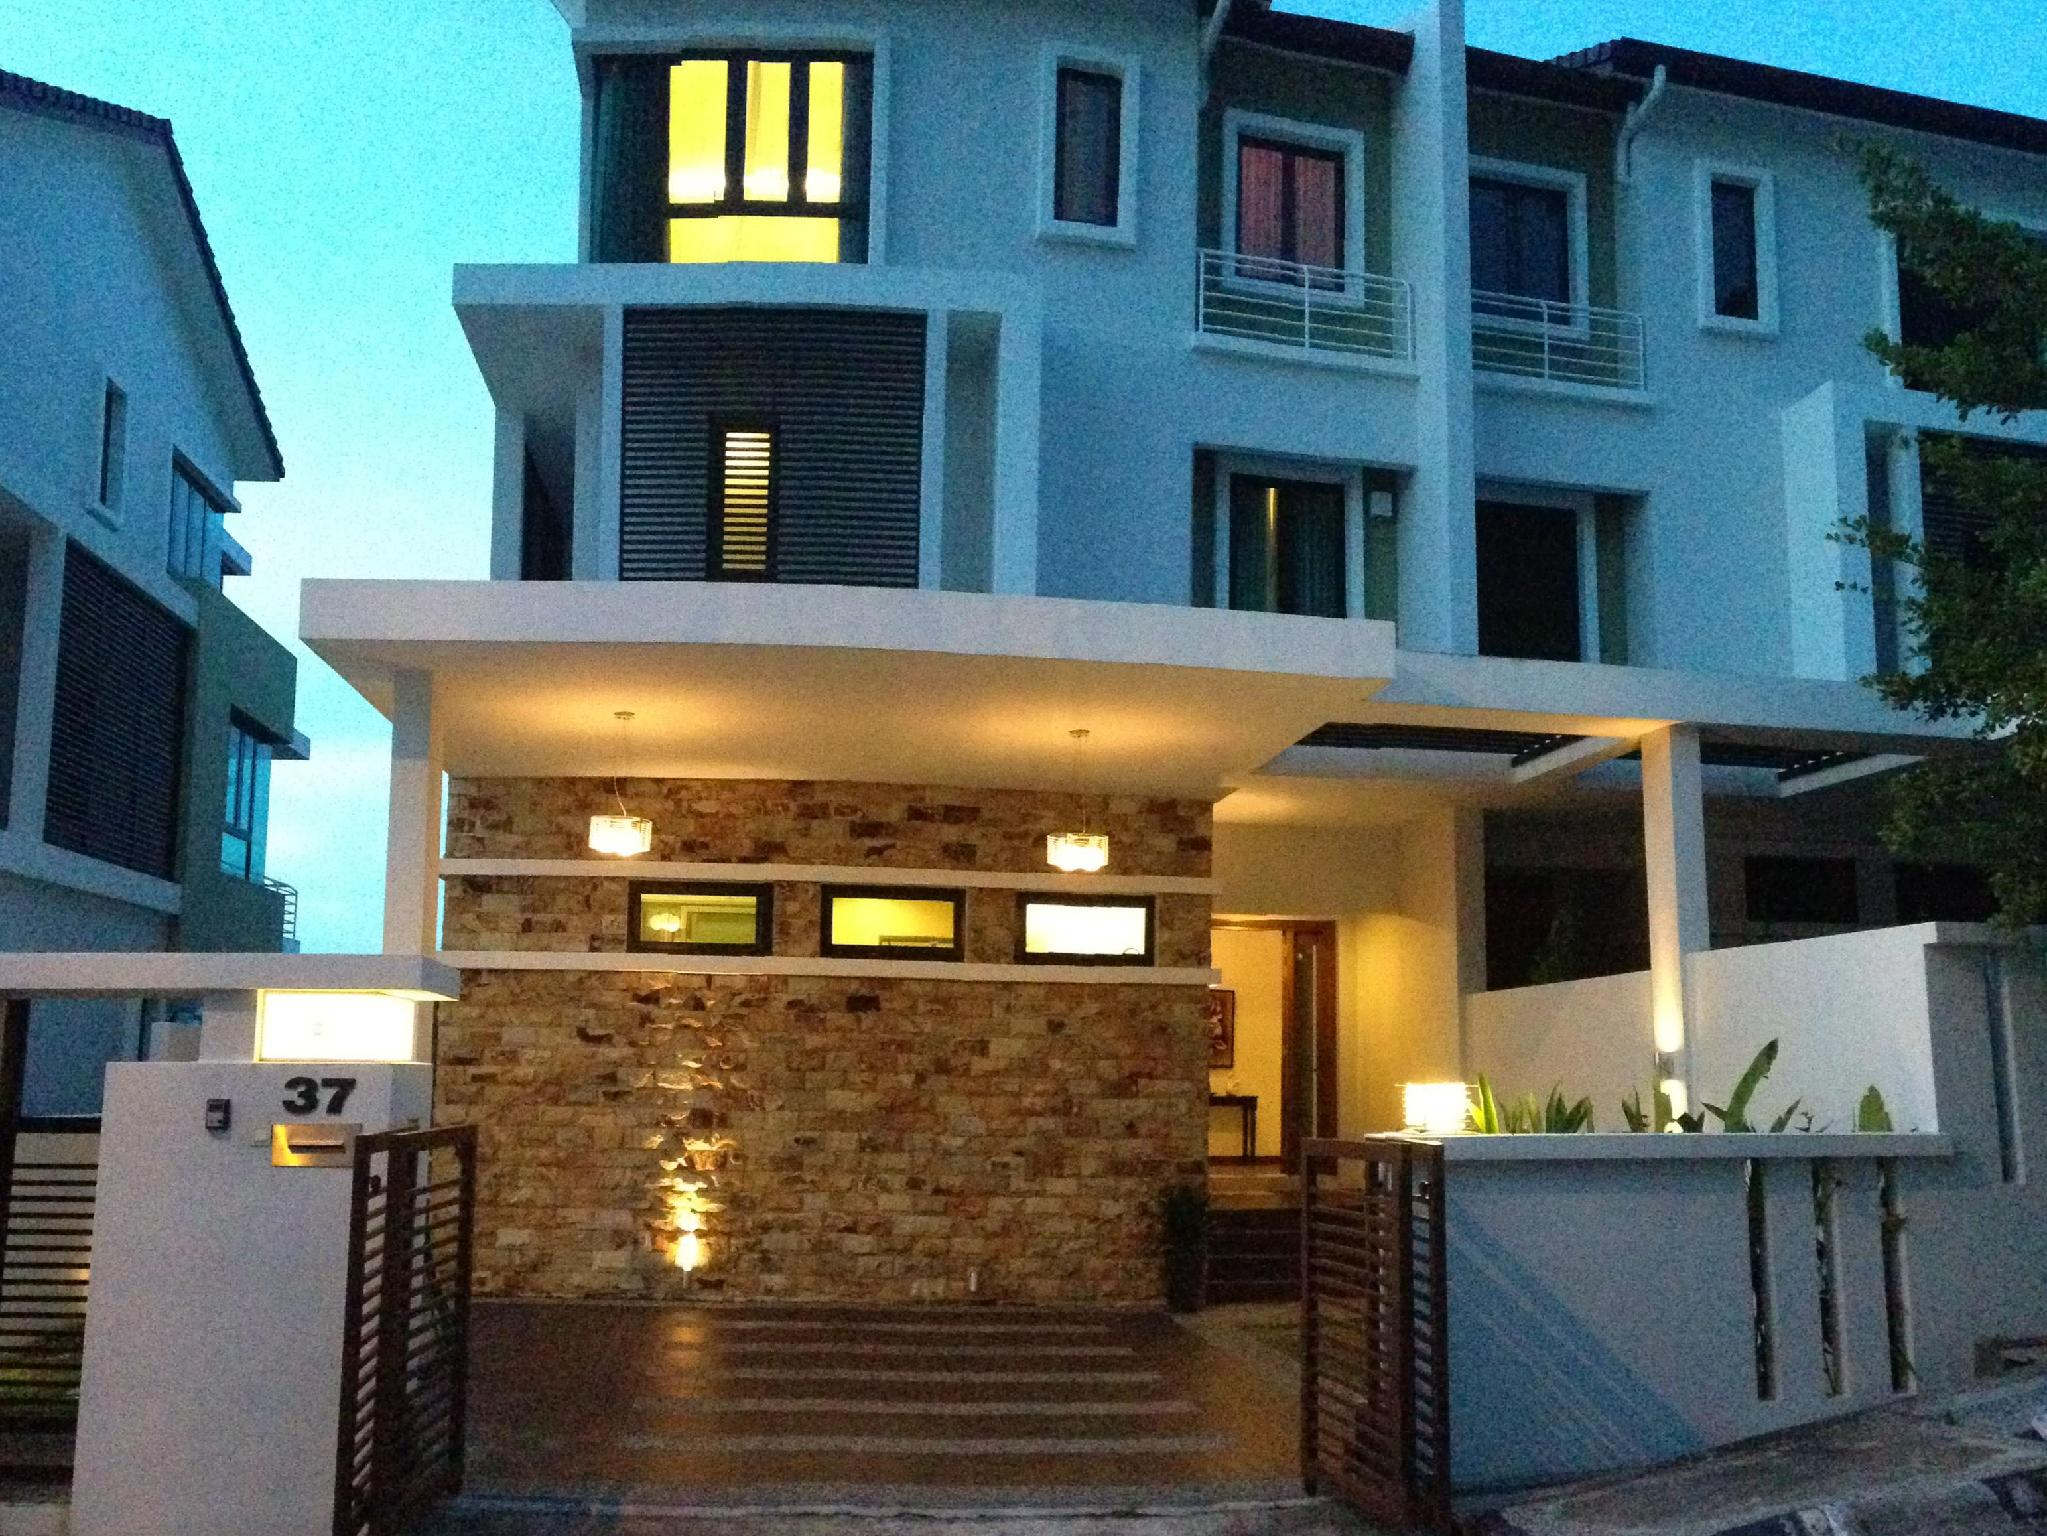 D' Homes Villas & Bungalow - Penang